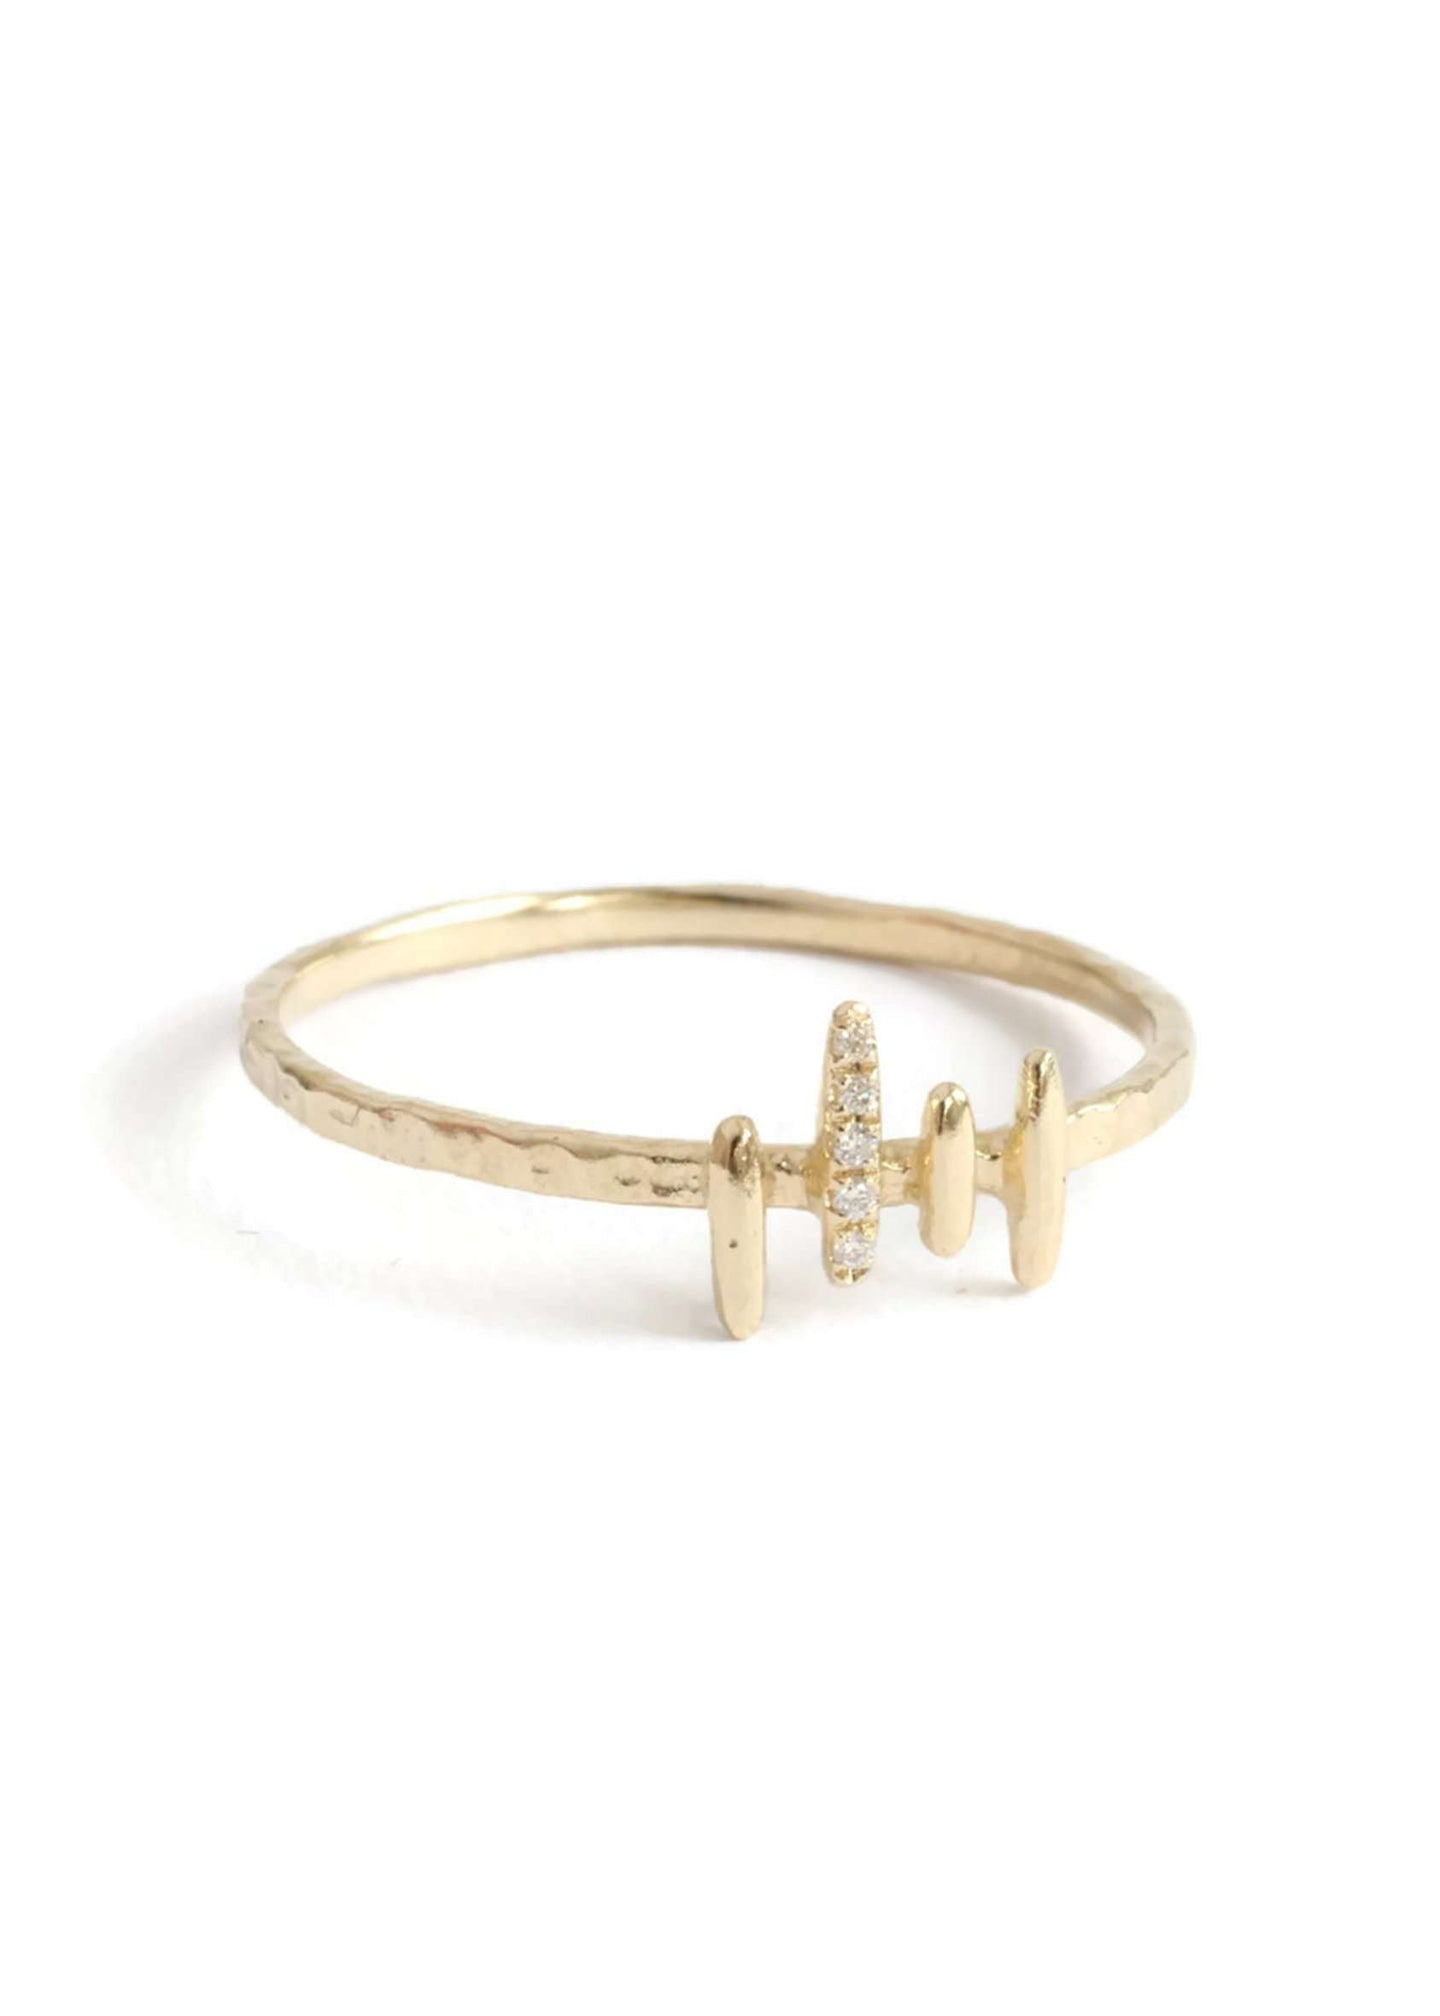 Honolulu Bebe | Minimal 14K gold and diamond wave ring | Rue Saint Paul